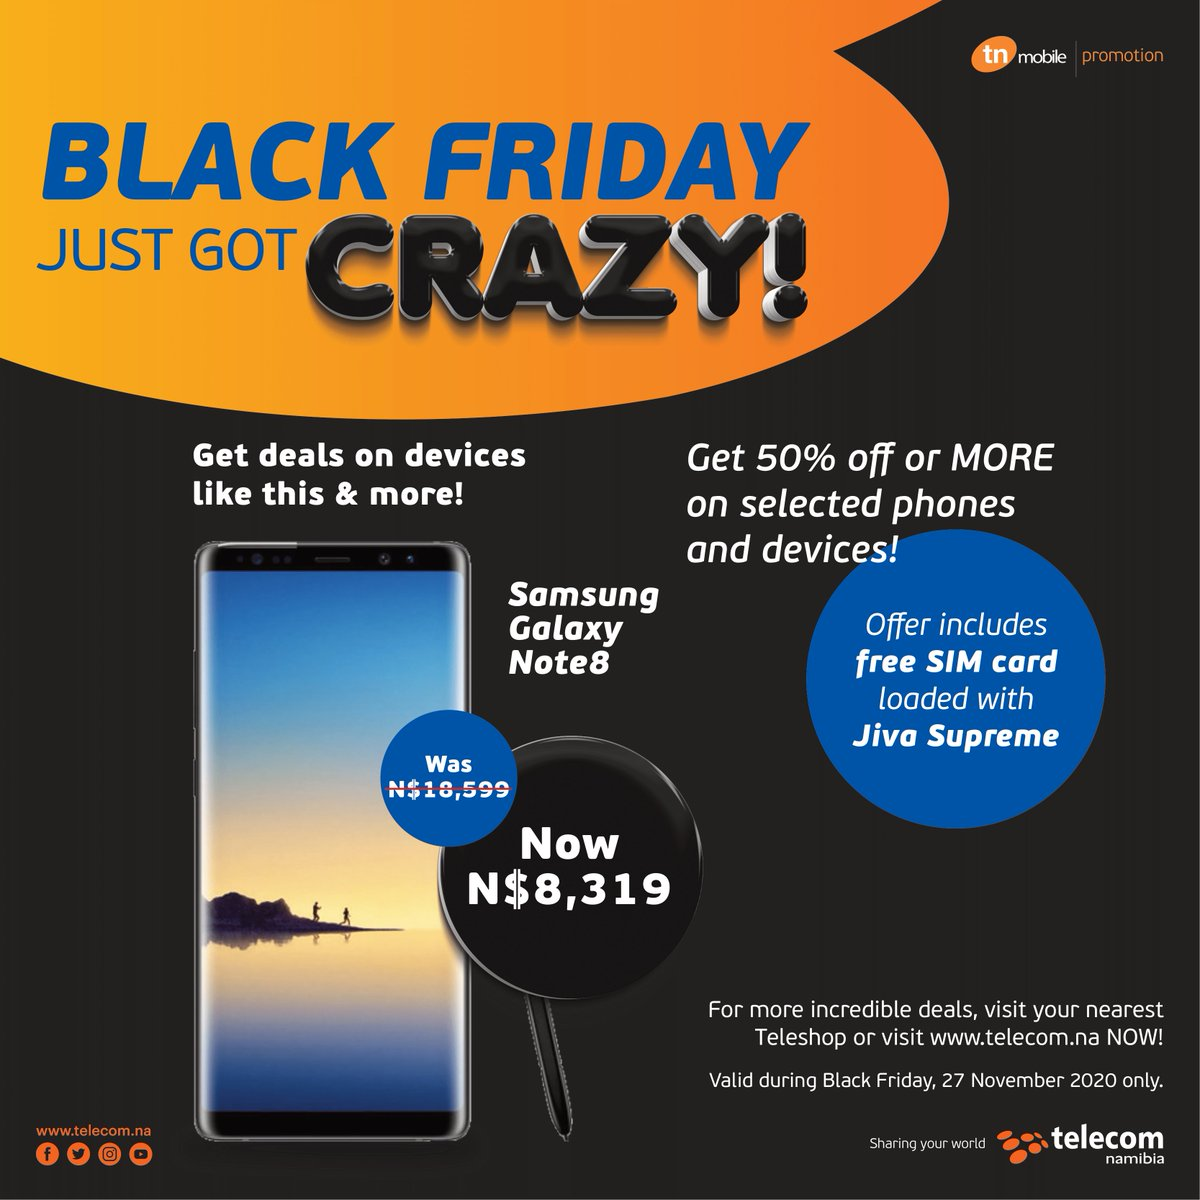 Telecom Namibia On Twitter At Tn Mobile We Re Celebrating A Crazy Black Friday 2020 In A Good Way With The Best Black Friday Deal We Re Giving You 50 Off Or More On